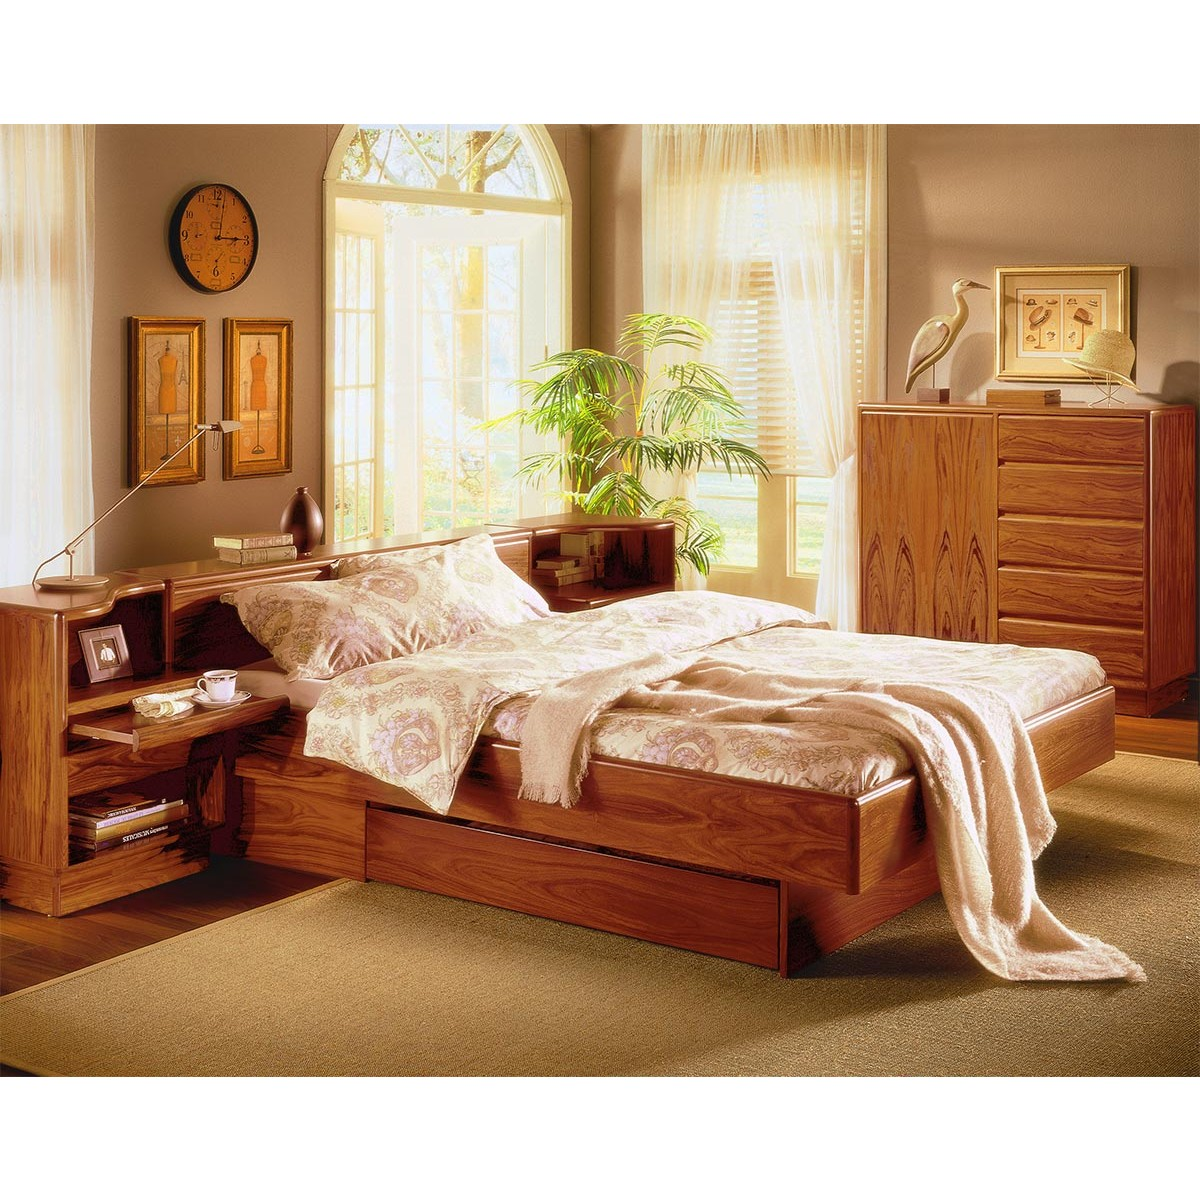 mobican prestigia bedroom set - Full Set Bedroom Set